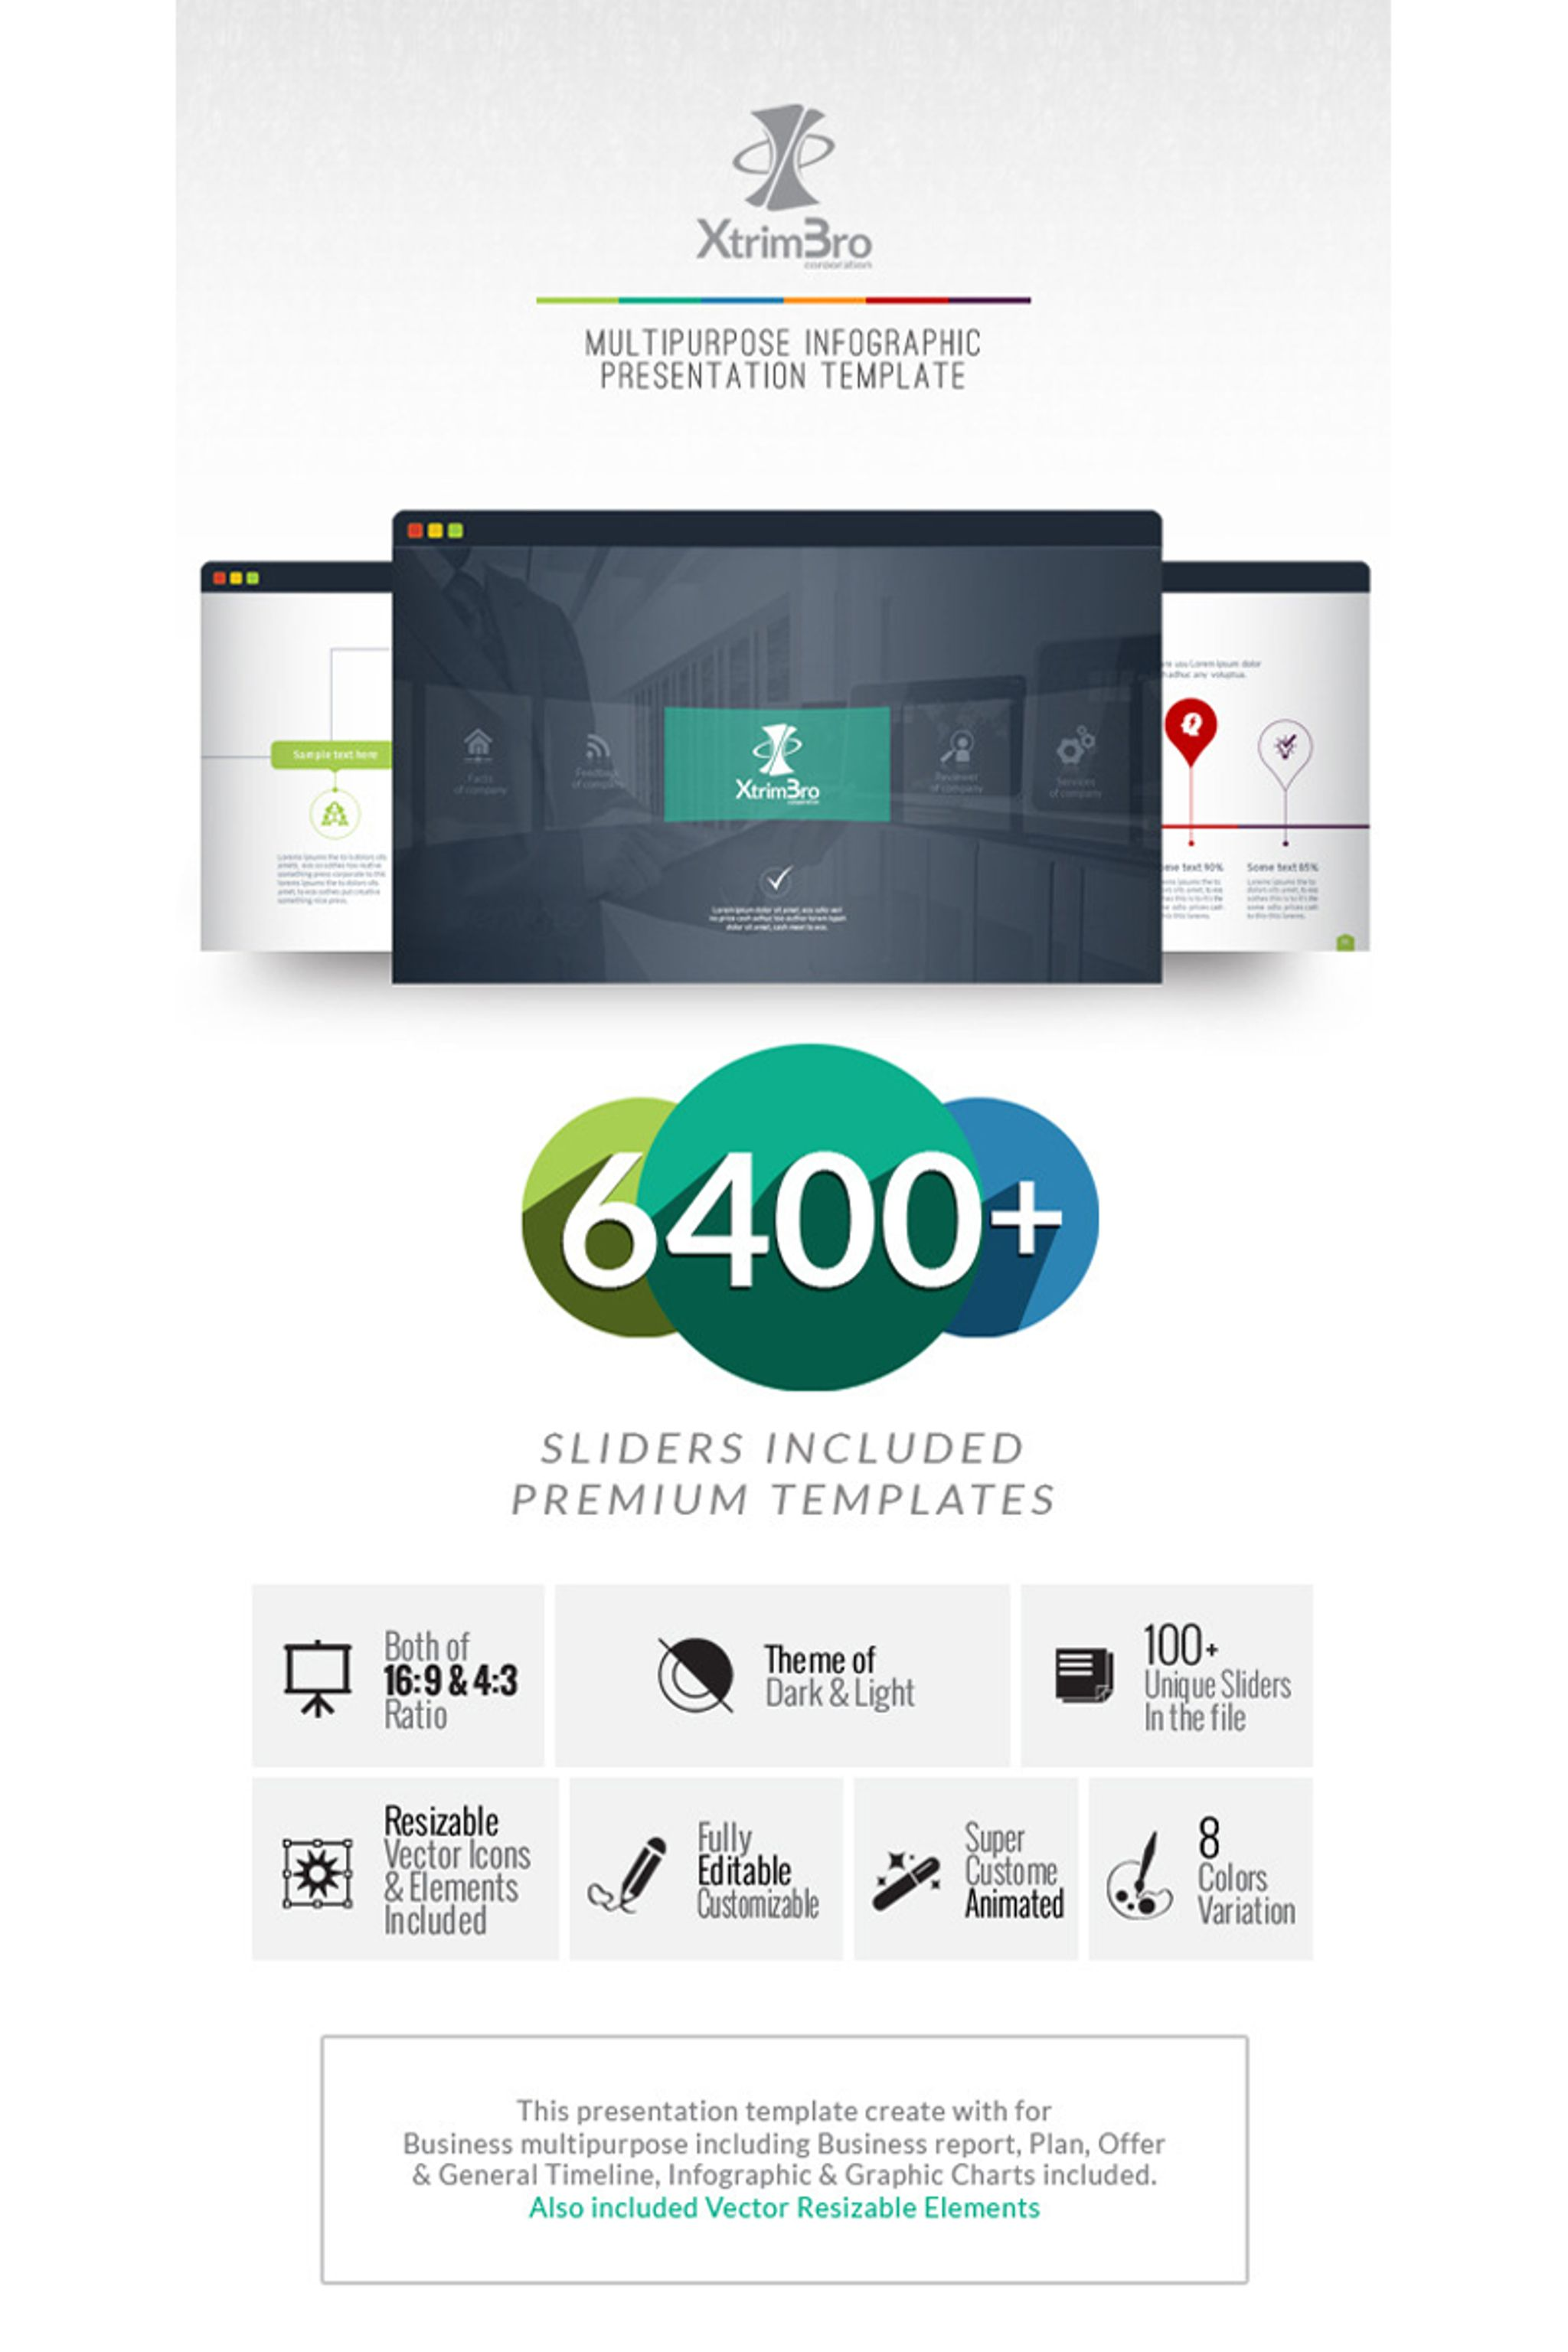 Xtrimbro multipurpose infographic presentational powerpoint xtrimbro multipurpose infographic presentational powerpoint template 67300 toneelgroepblik Image collections